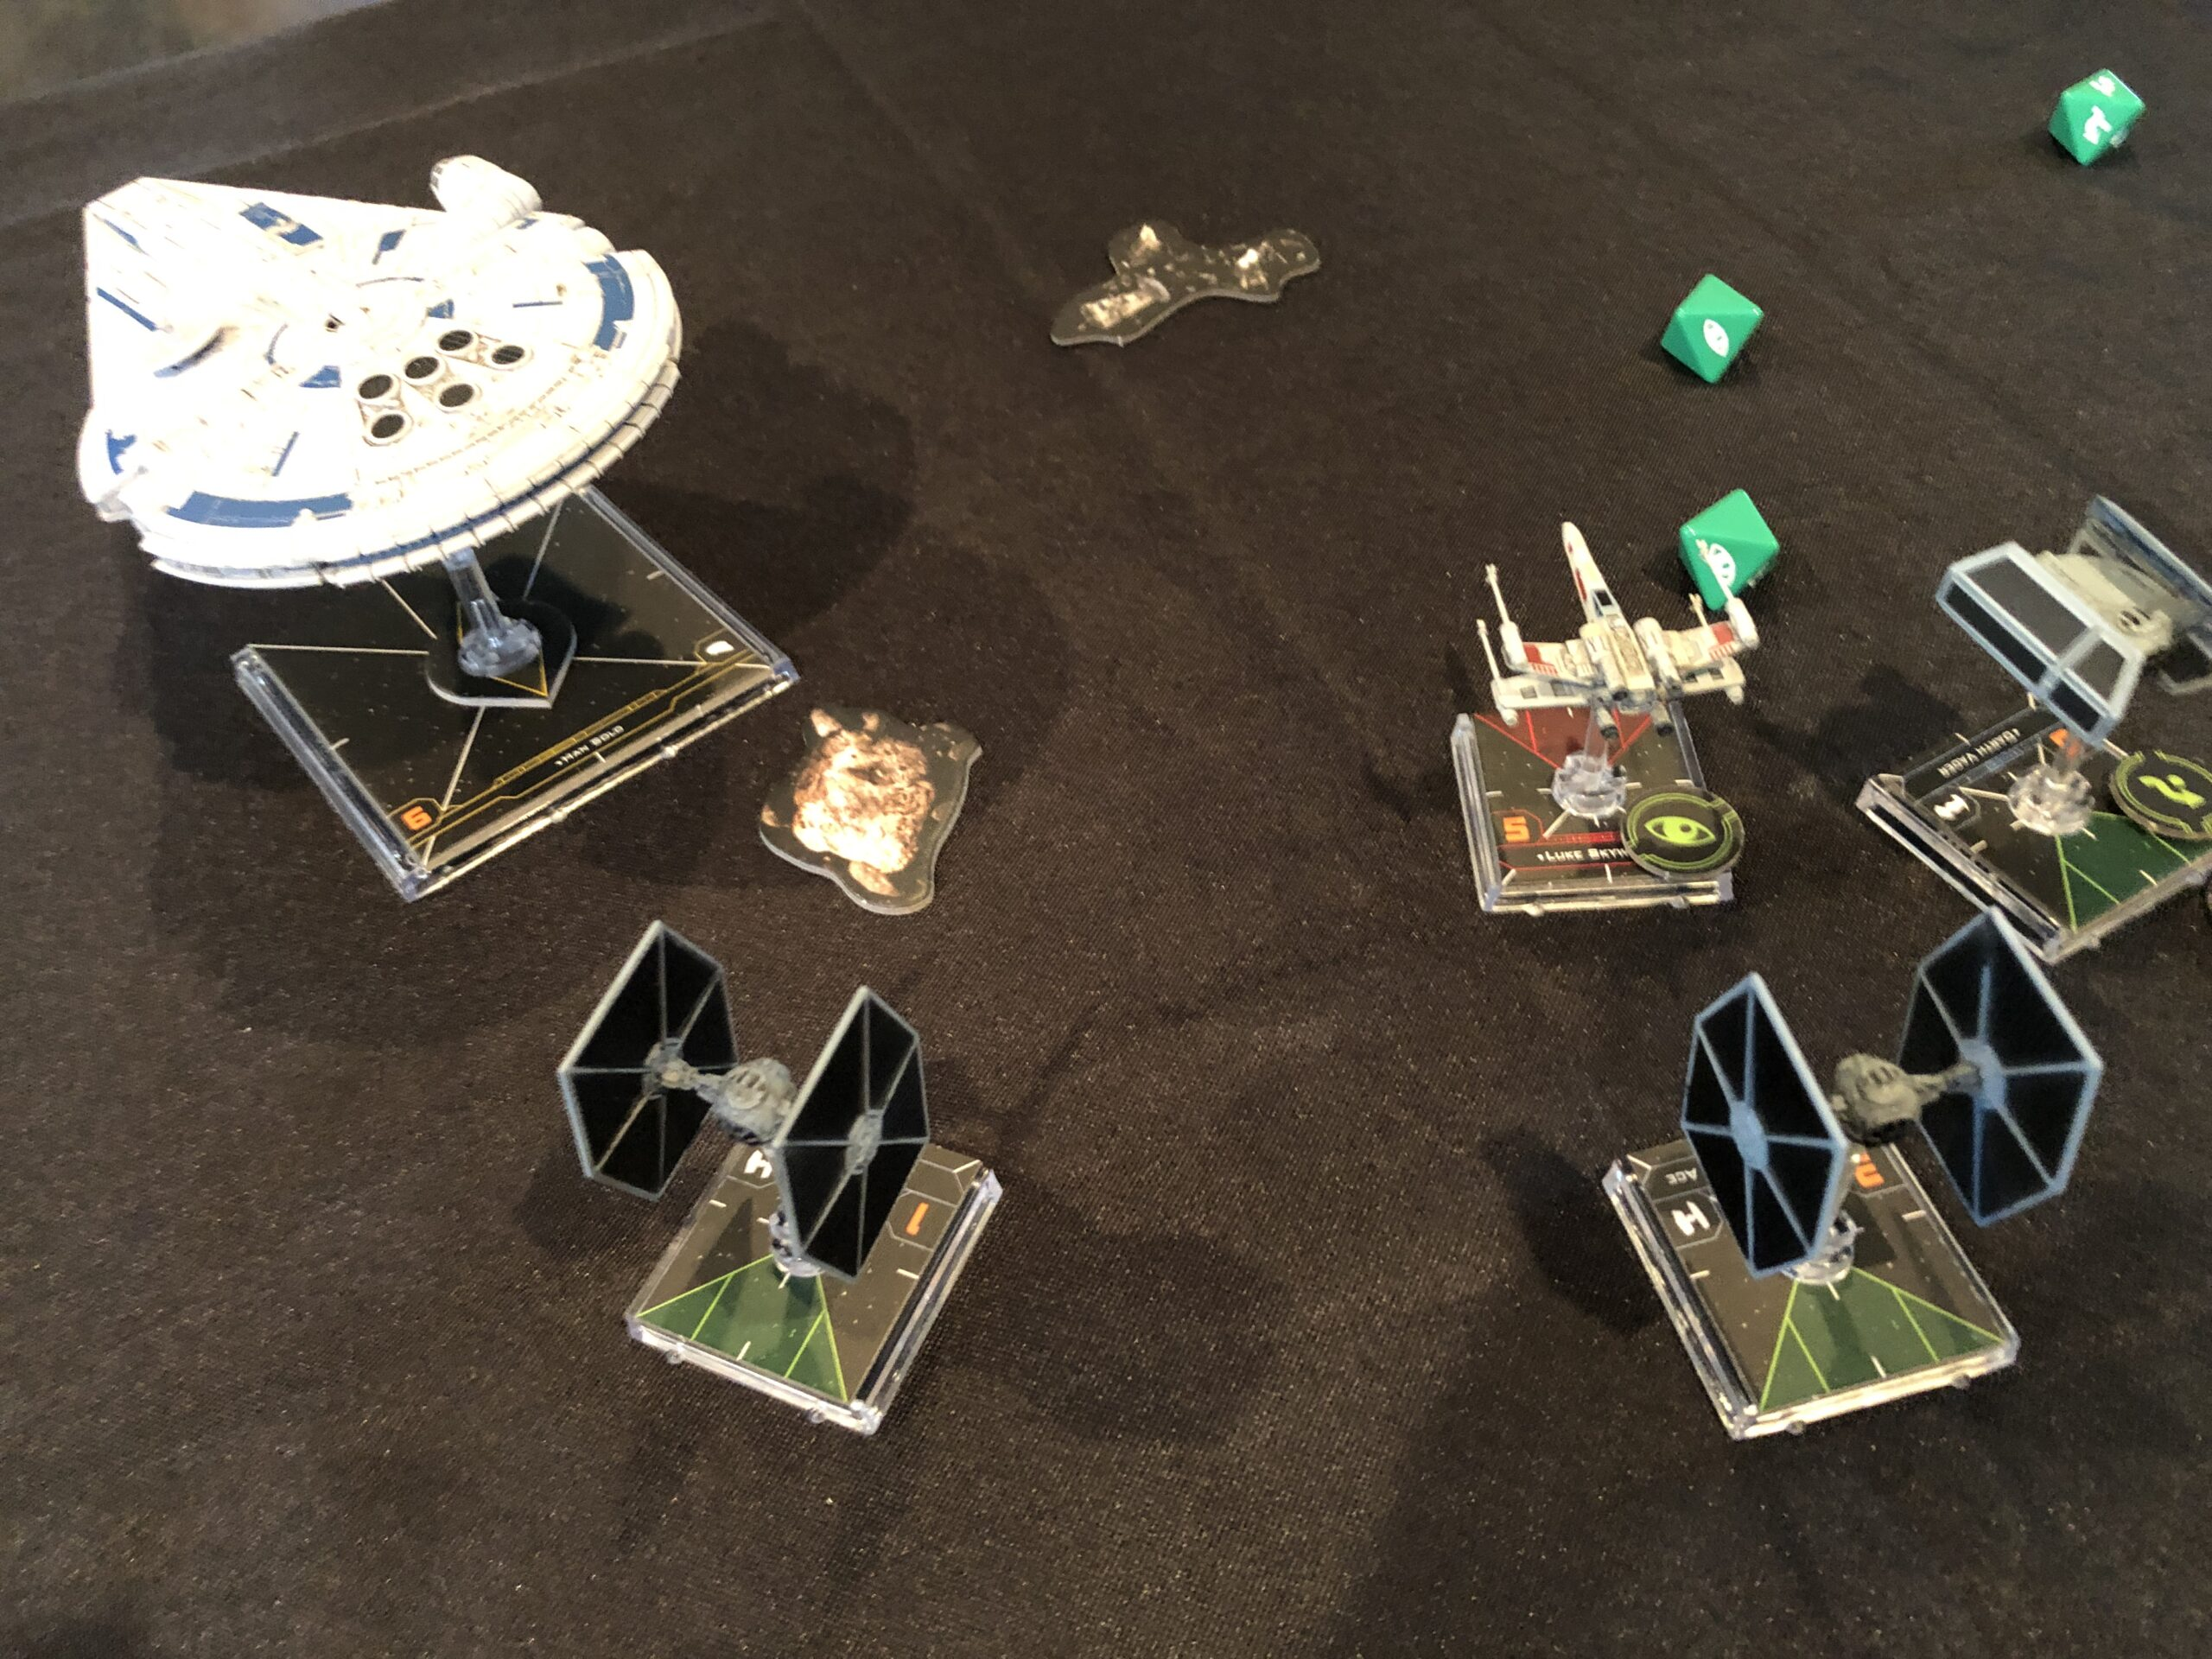 X-Wing Miniatures Game, another fierce battle